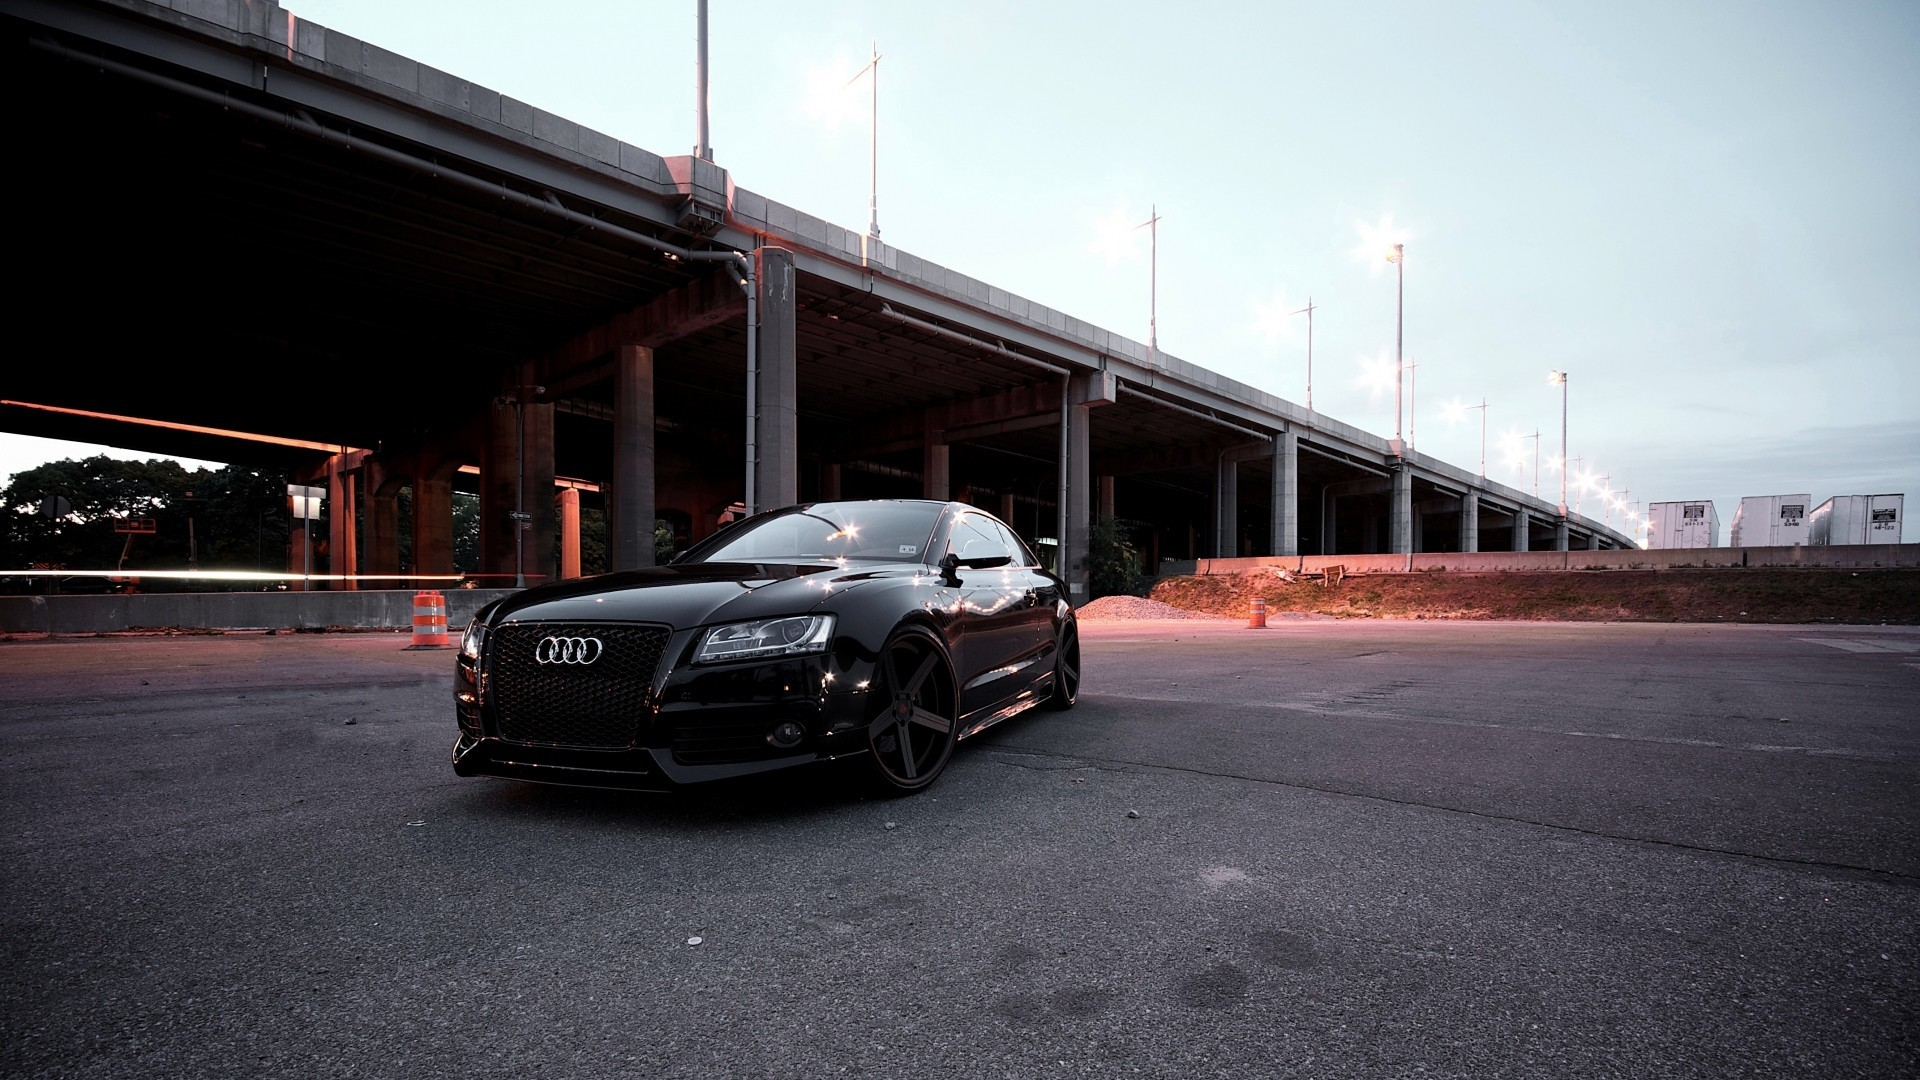 Great 1920x1080 Audi RS5 2015 Black